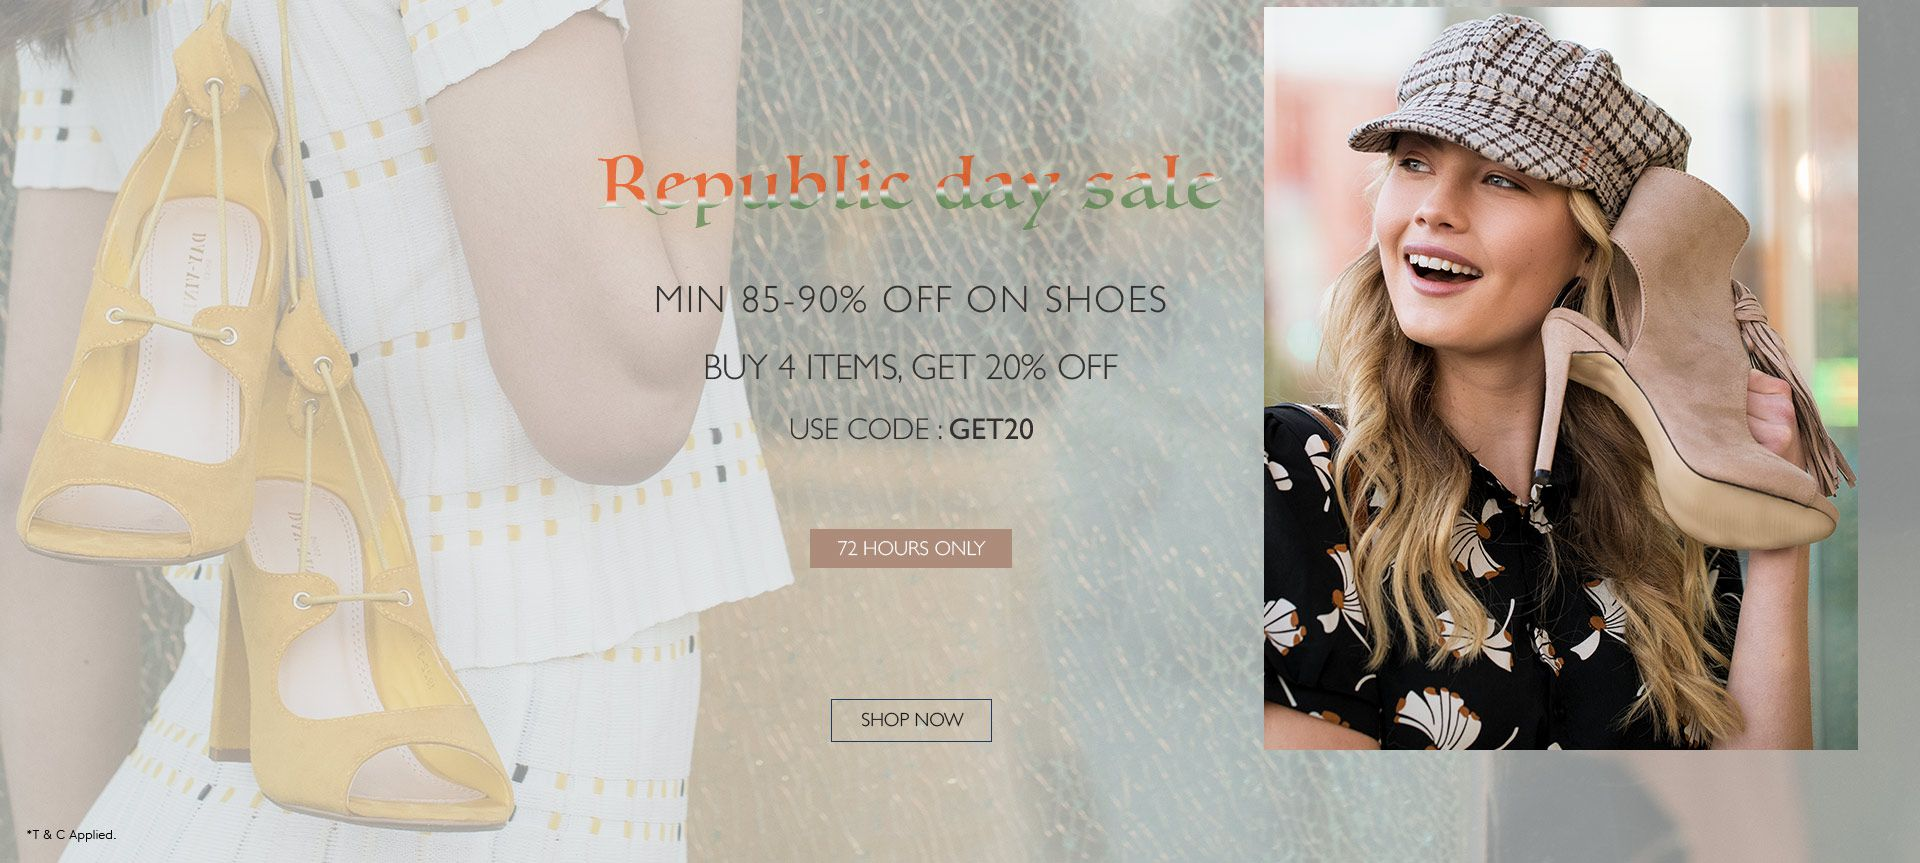 Shoes 85-90% off